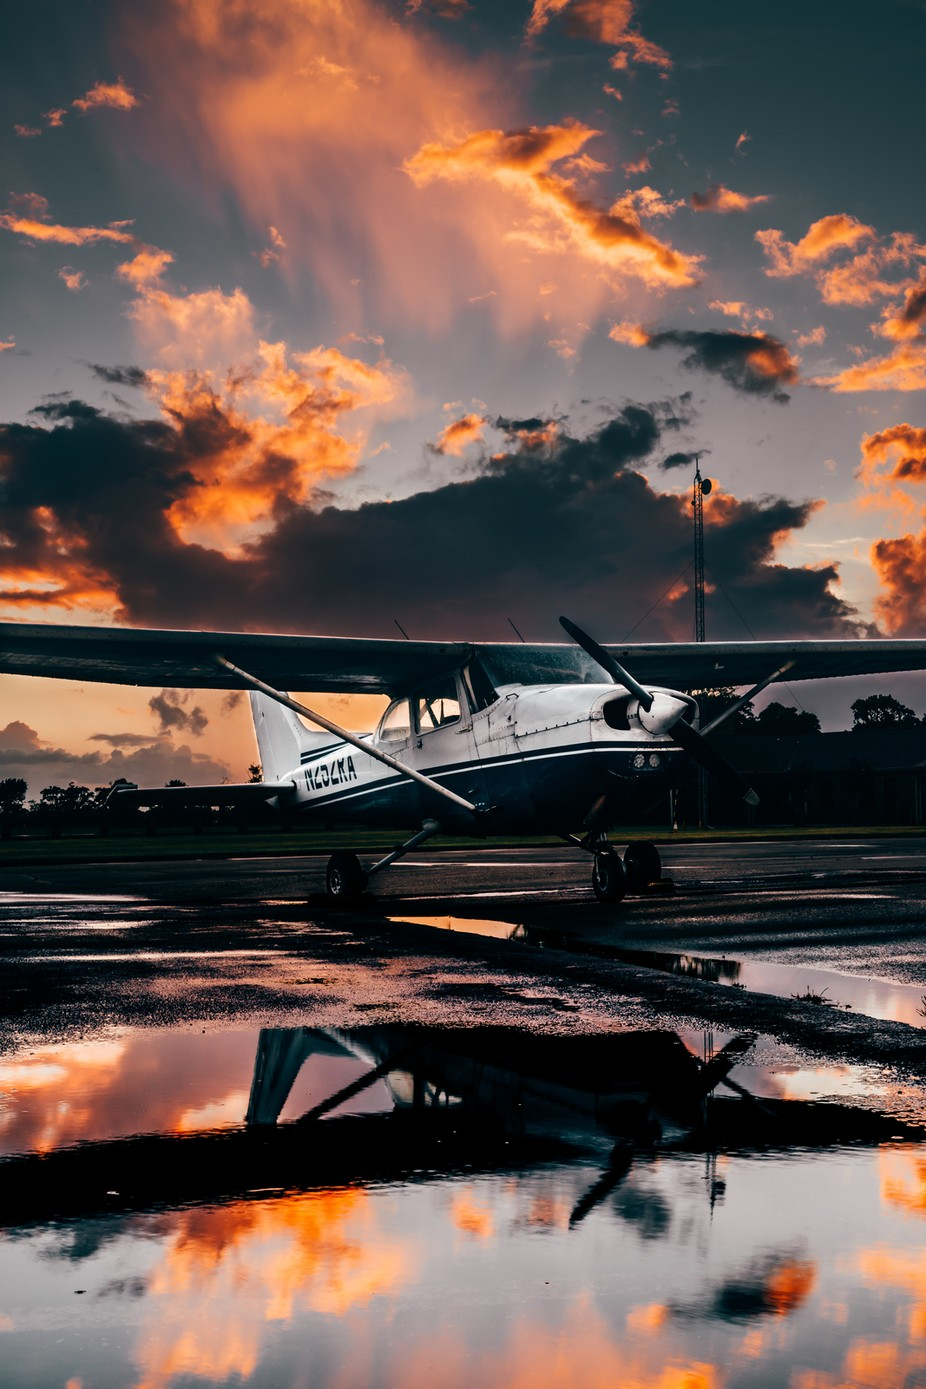 Cessna 1977 172N after a downpour during sunset by prestonbarnett - Aircraft Photo Contest